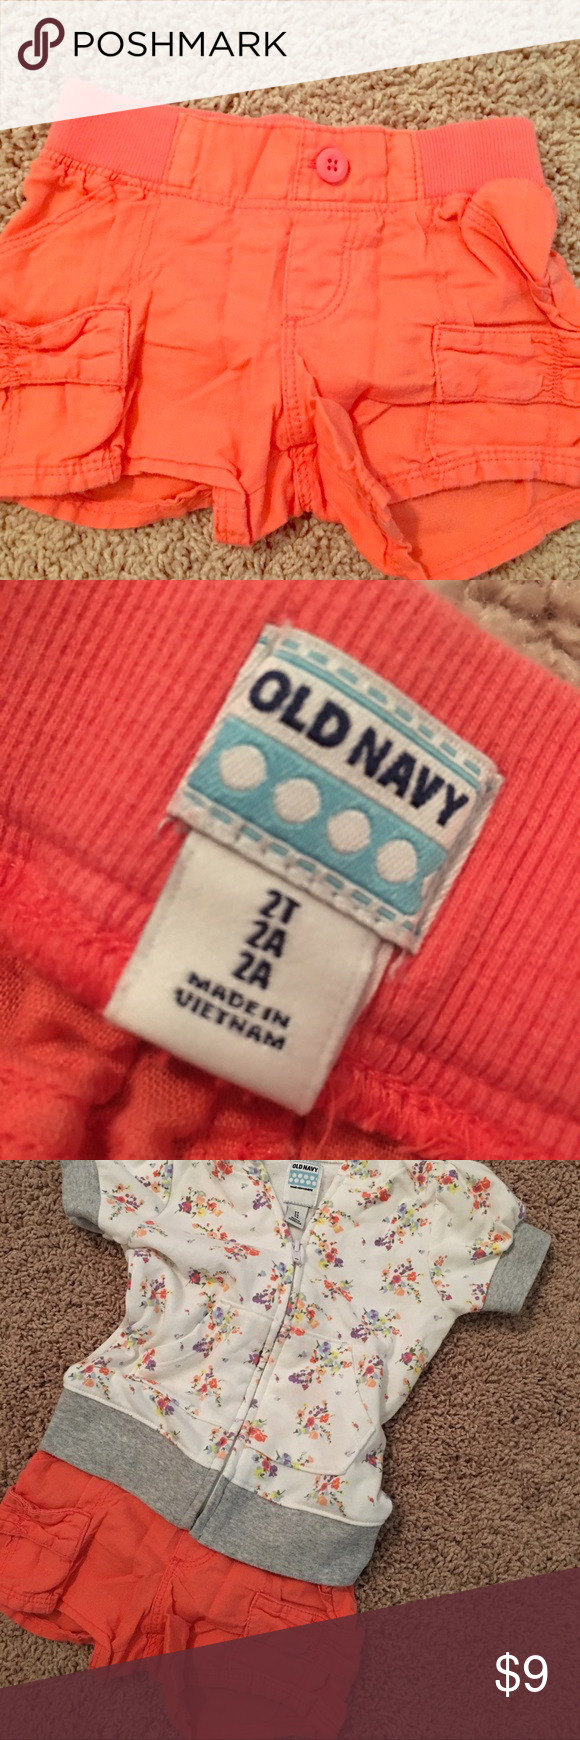 Cute Coral Cargo Shorts Perfect condition. Lightweight coral cargo shorts with elastic waistband. Jacket is also for sale. Purchase together for extra savings. Old Navy Bottoms Shorts